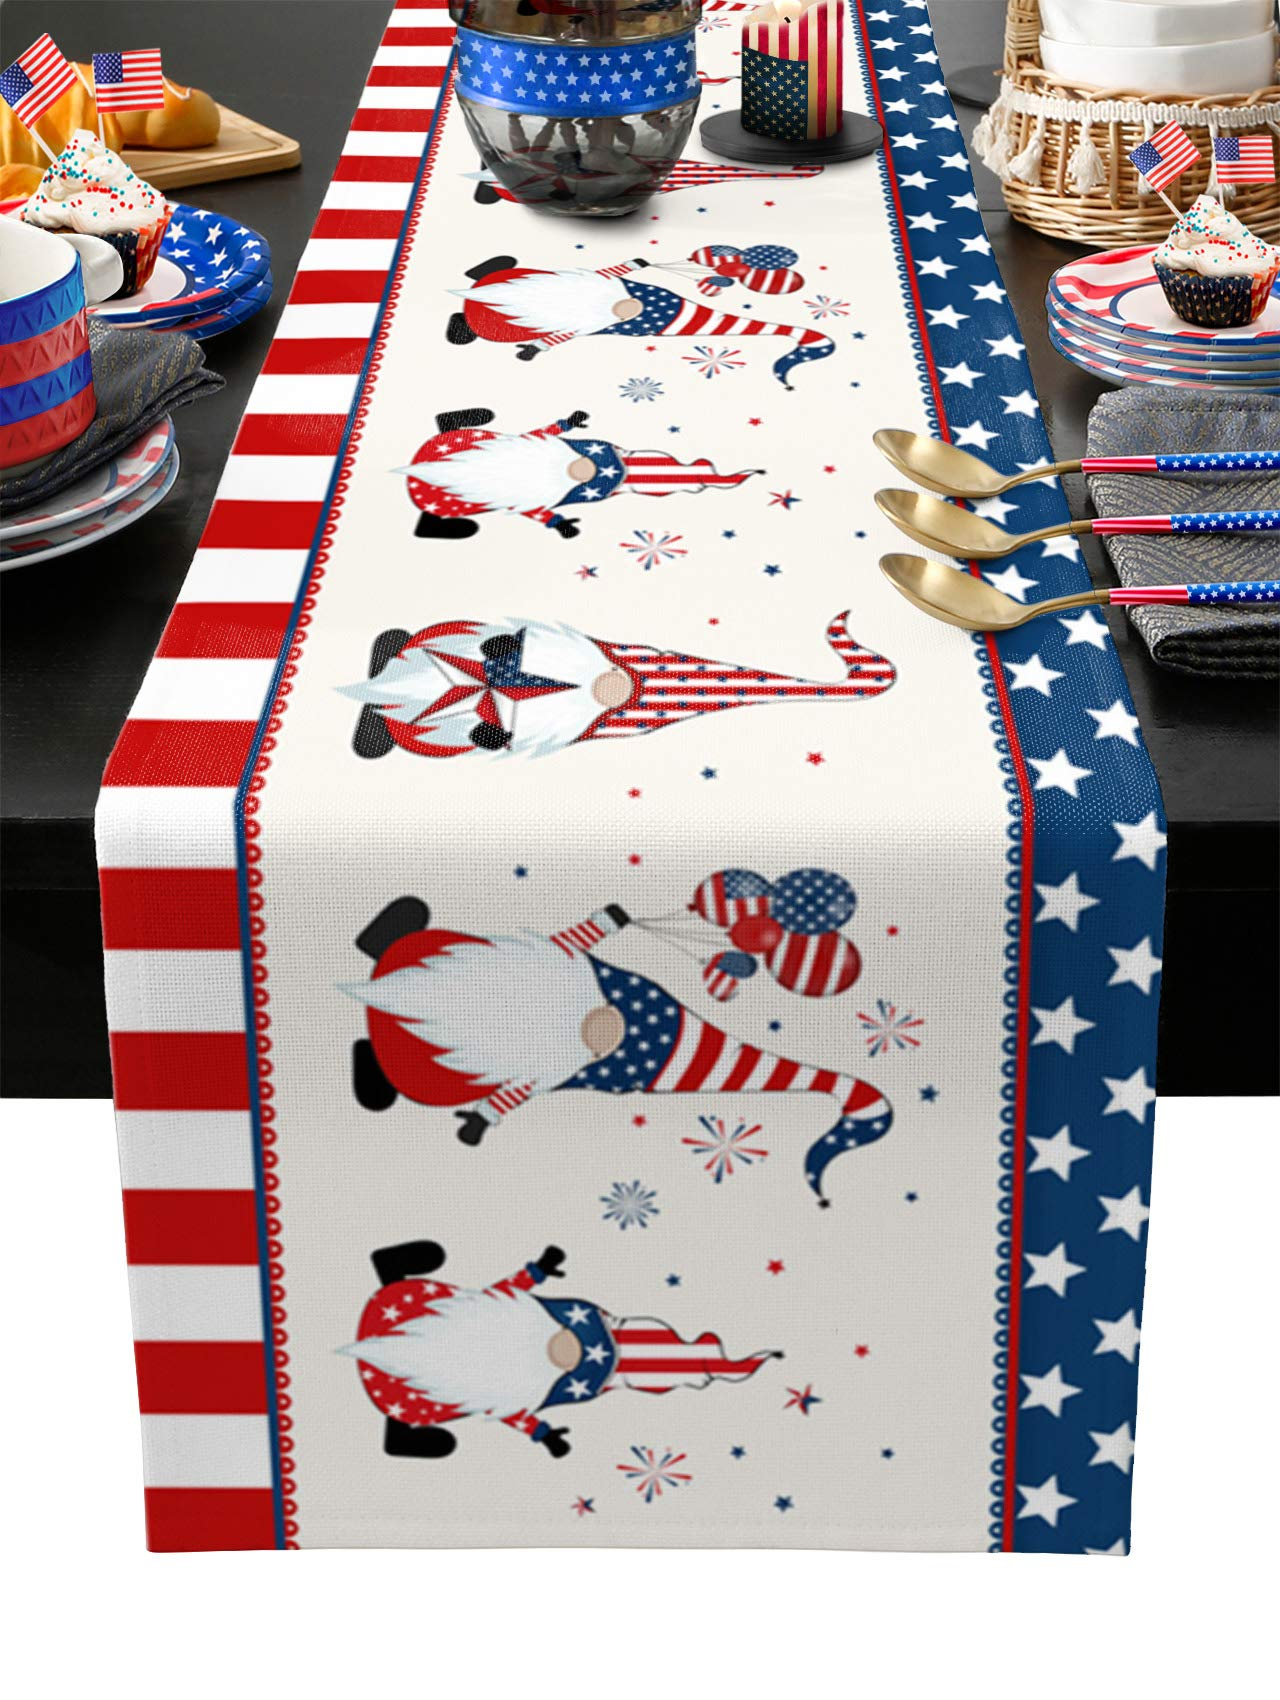 Independence Day Burlap Table Runner 108 Inches Long,Independence Day Welcome Gnomes Balloons Pentagram Stripes Border Linen Dinner Table Setting Decor for Wedding Gatherings Party Baby Shower